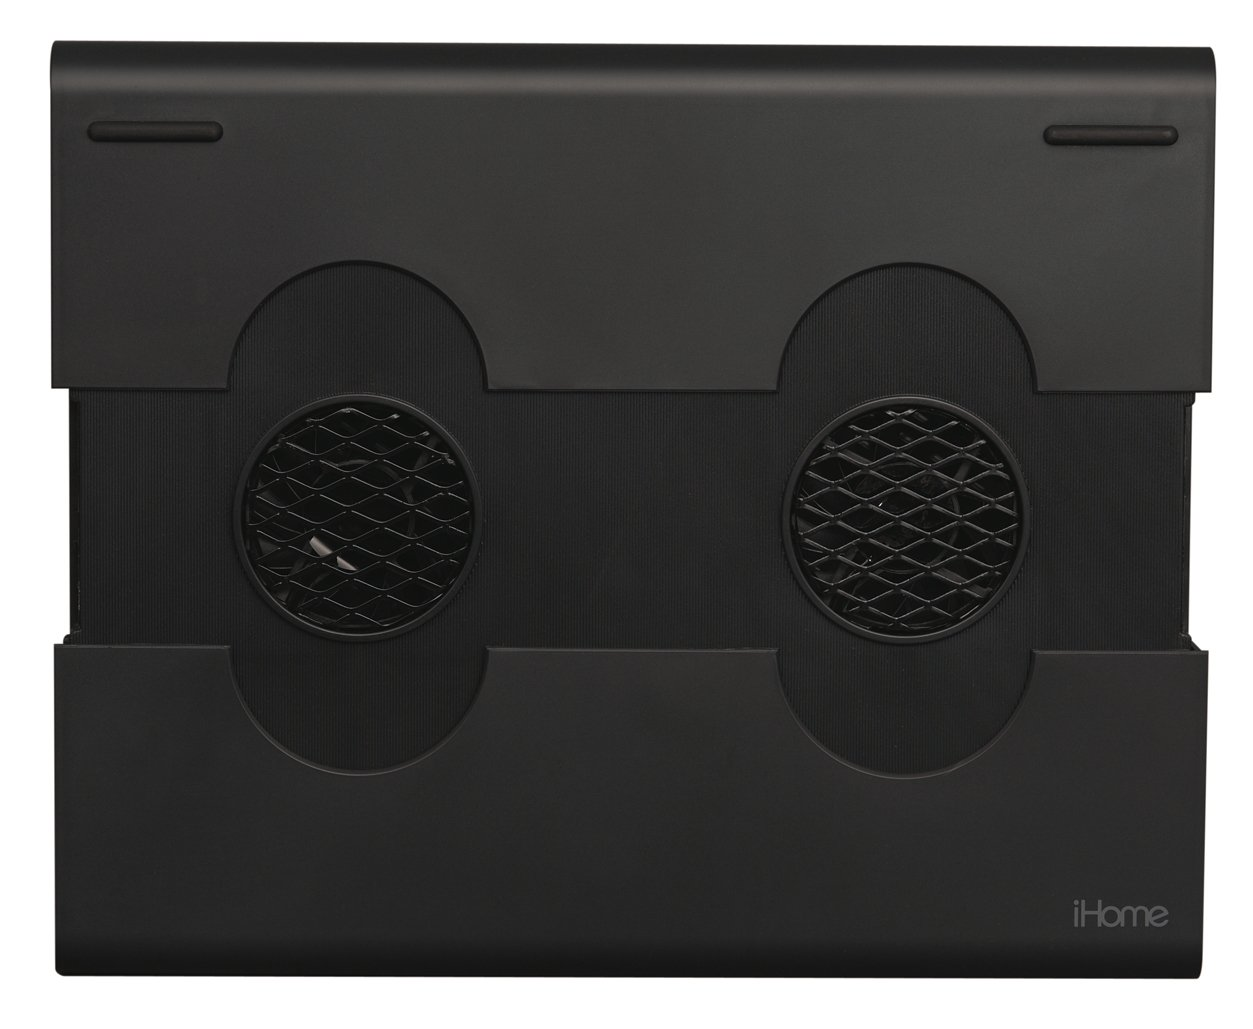 iHome  Notebook Cooling Pad with 3 USB 2.0 Ports - Black (IH-A705CB)